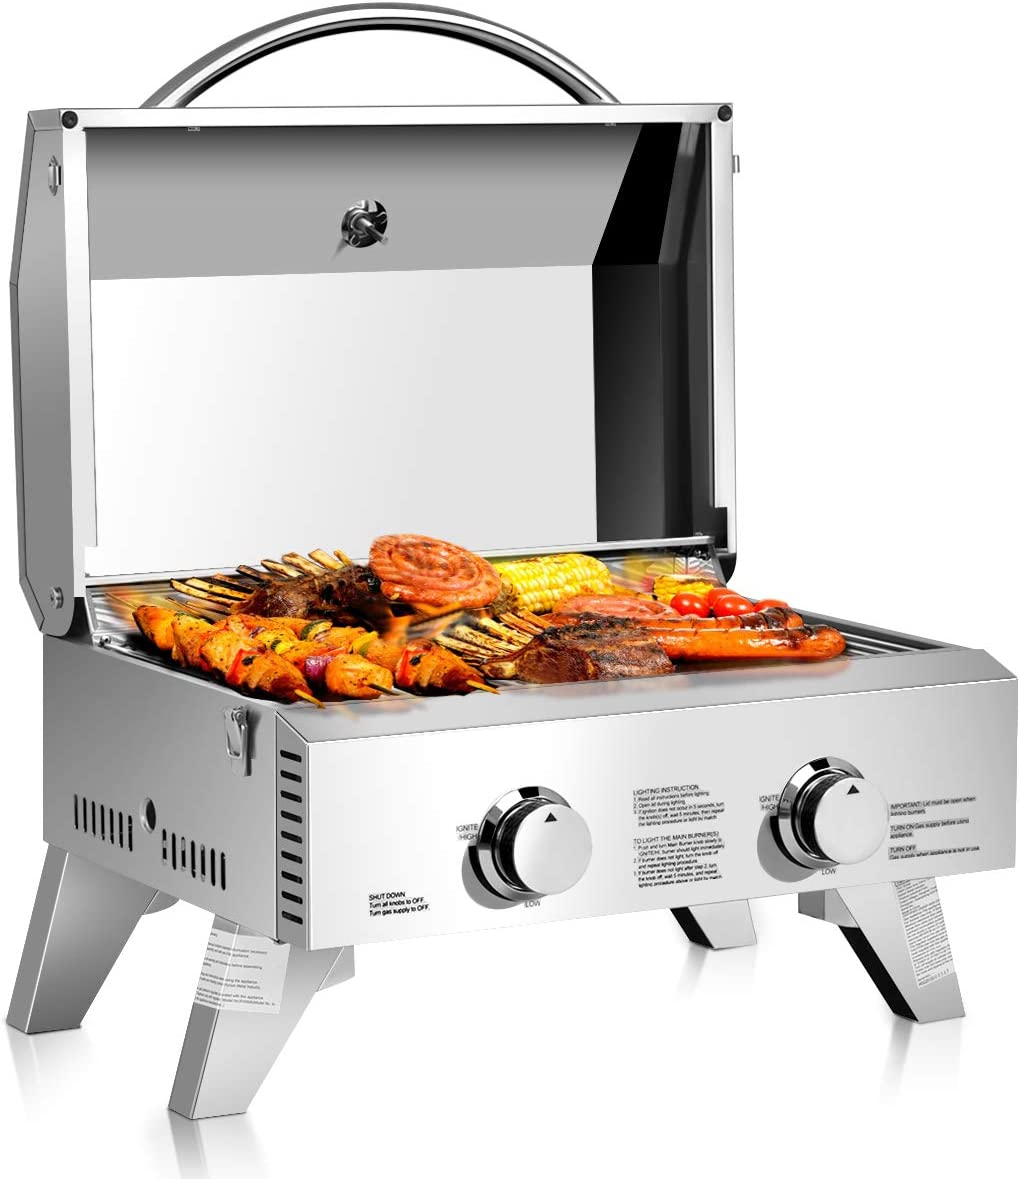 Giantex Propane Tabletop Stainless Steel Gas Grill